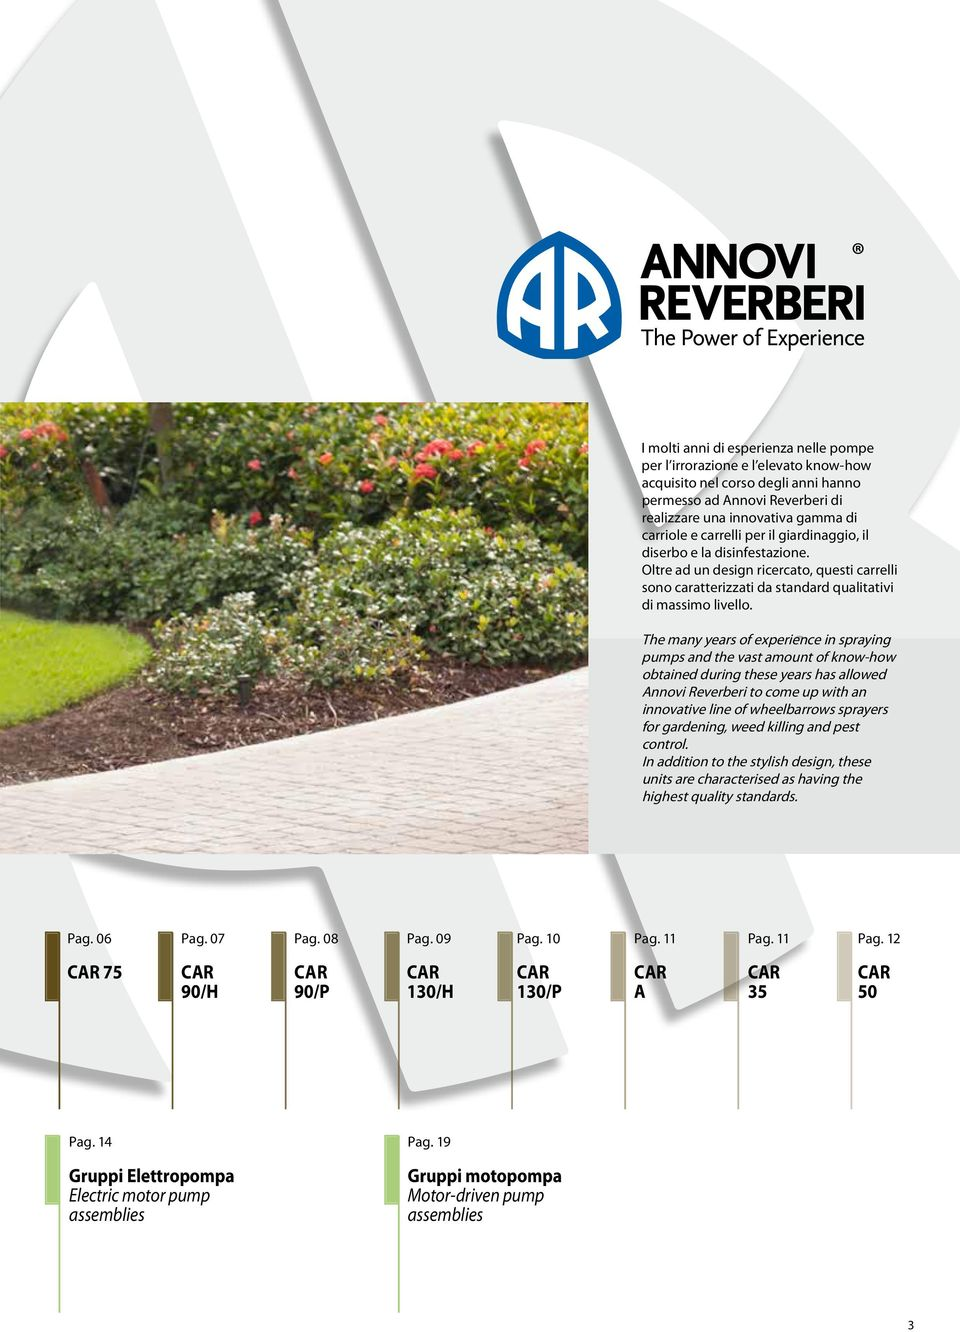 The many years of experience in spraying pumps and the vast amount of know-how obtained during these years has allowed Annovi Reverberi to come up with an innovative line of wheelbarrows sprayers for